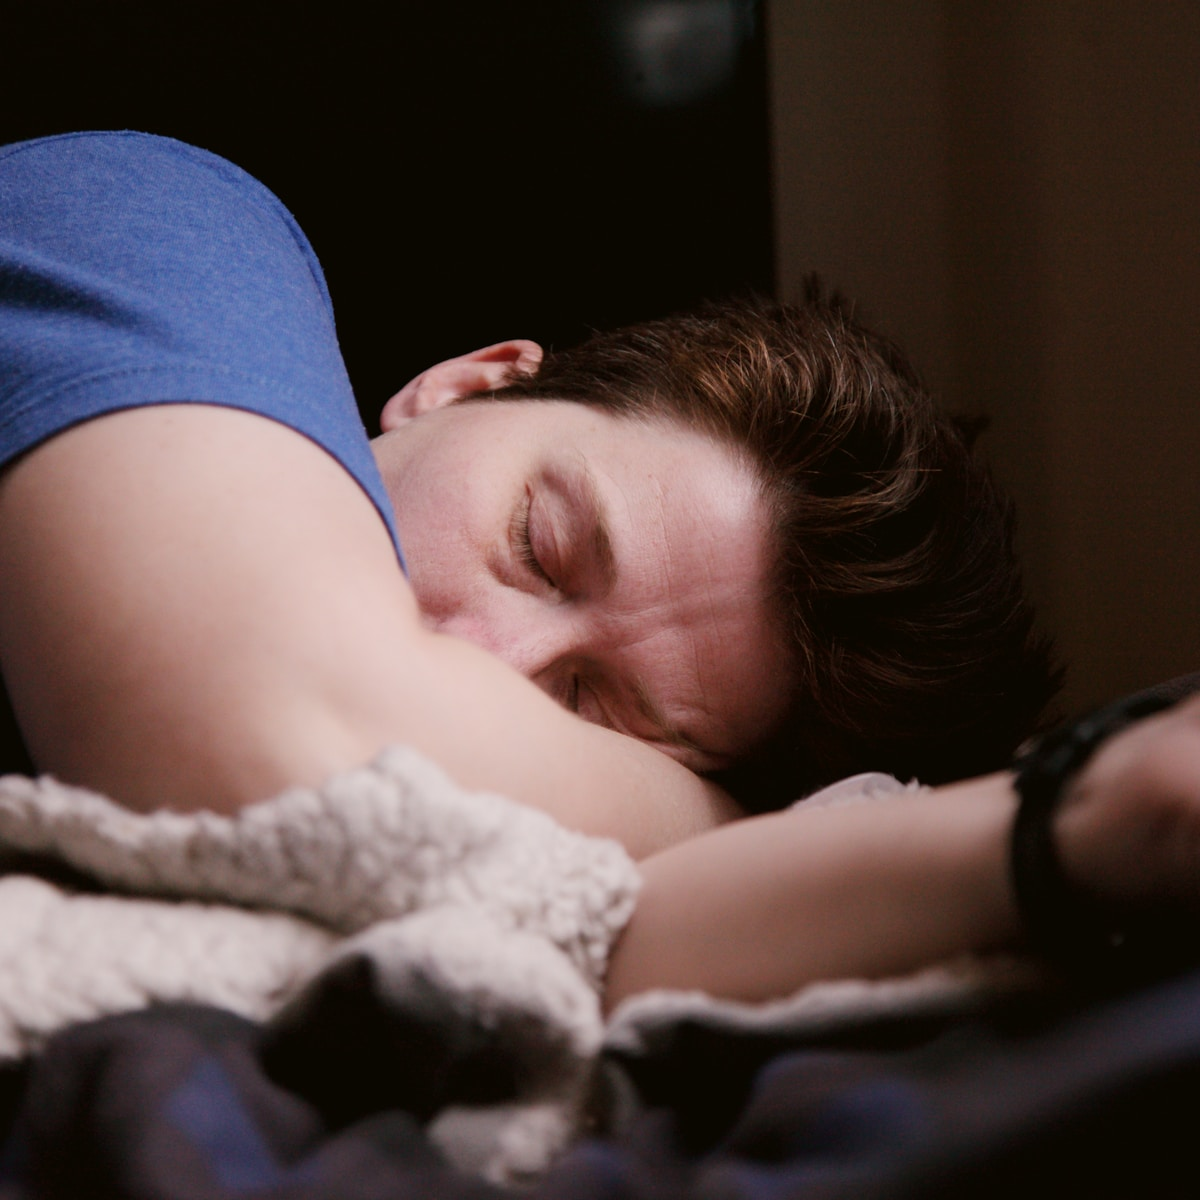 woman in blue shirt lying on bed